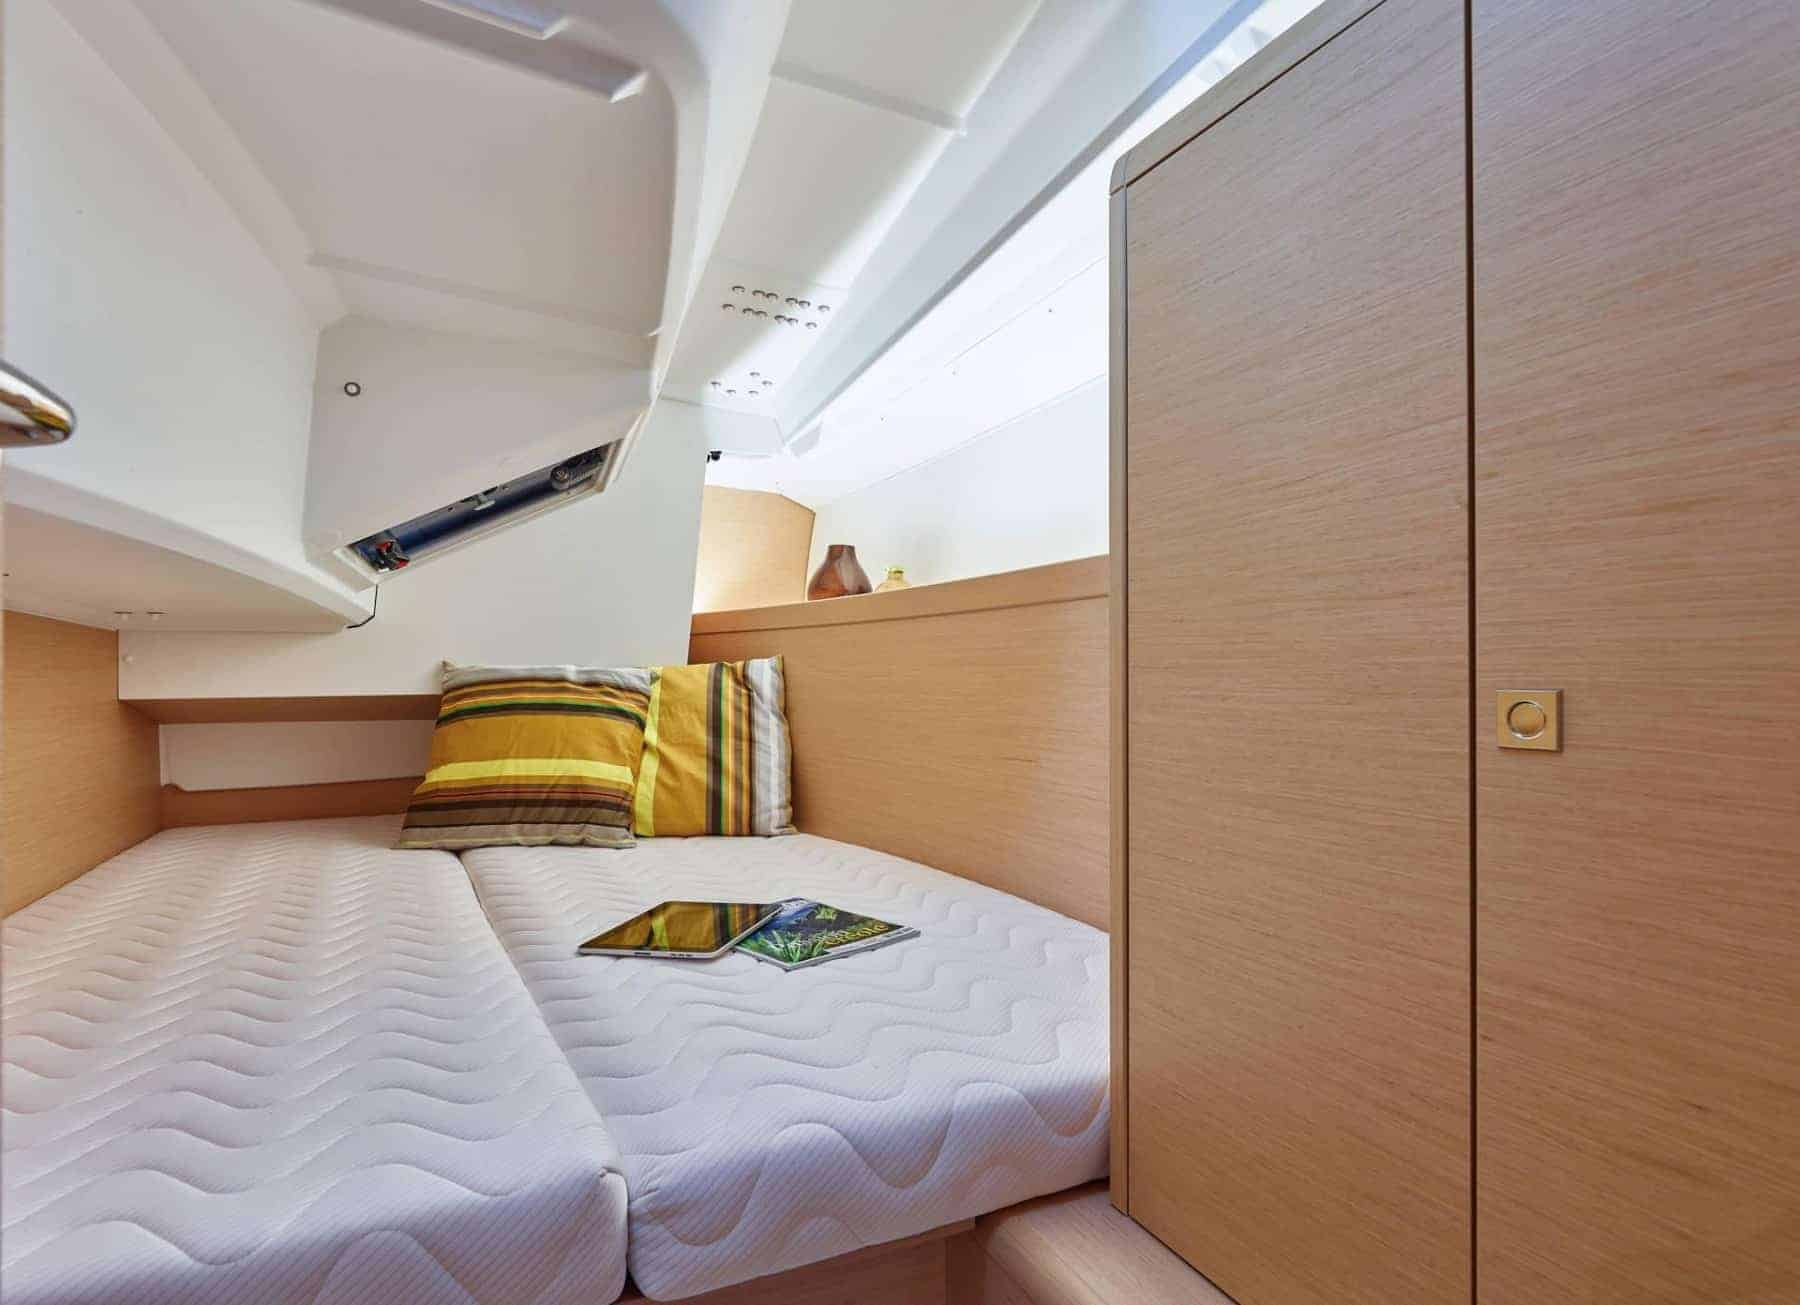 Bed in one of the cabins of the Jeanneau Sun Odyssey 349 with white ceiling and wooden panels